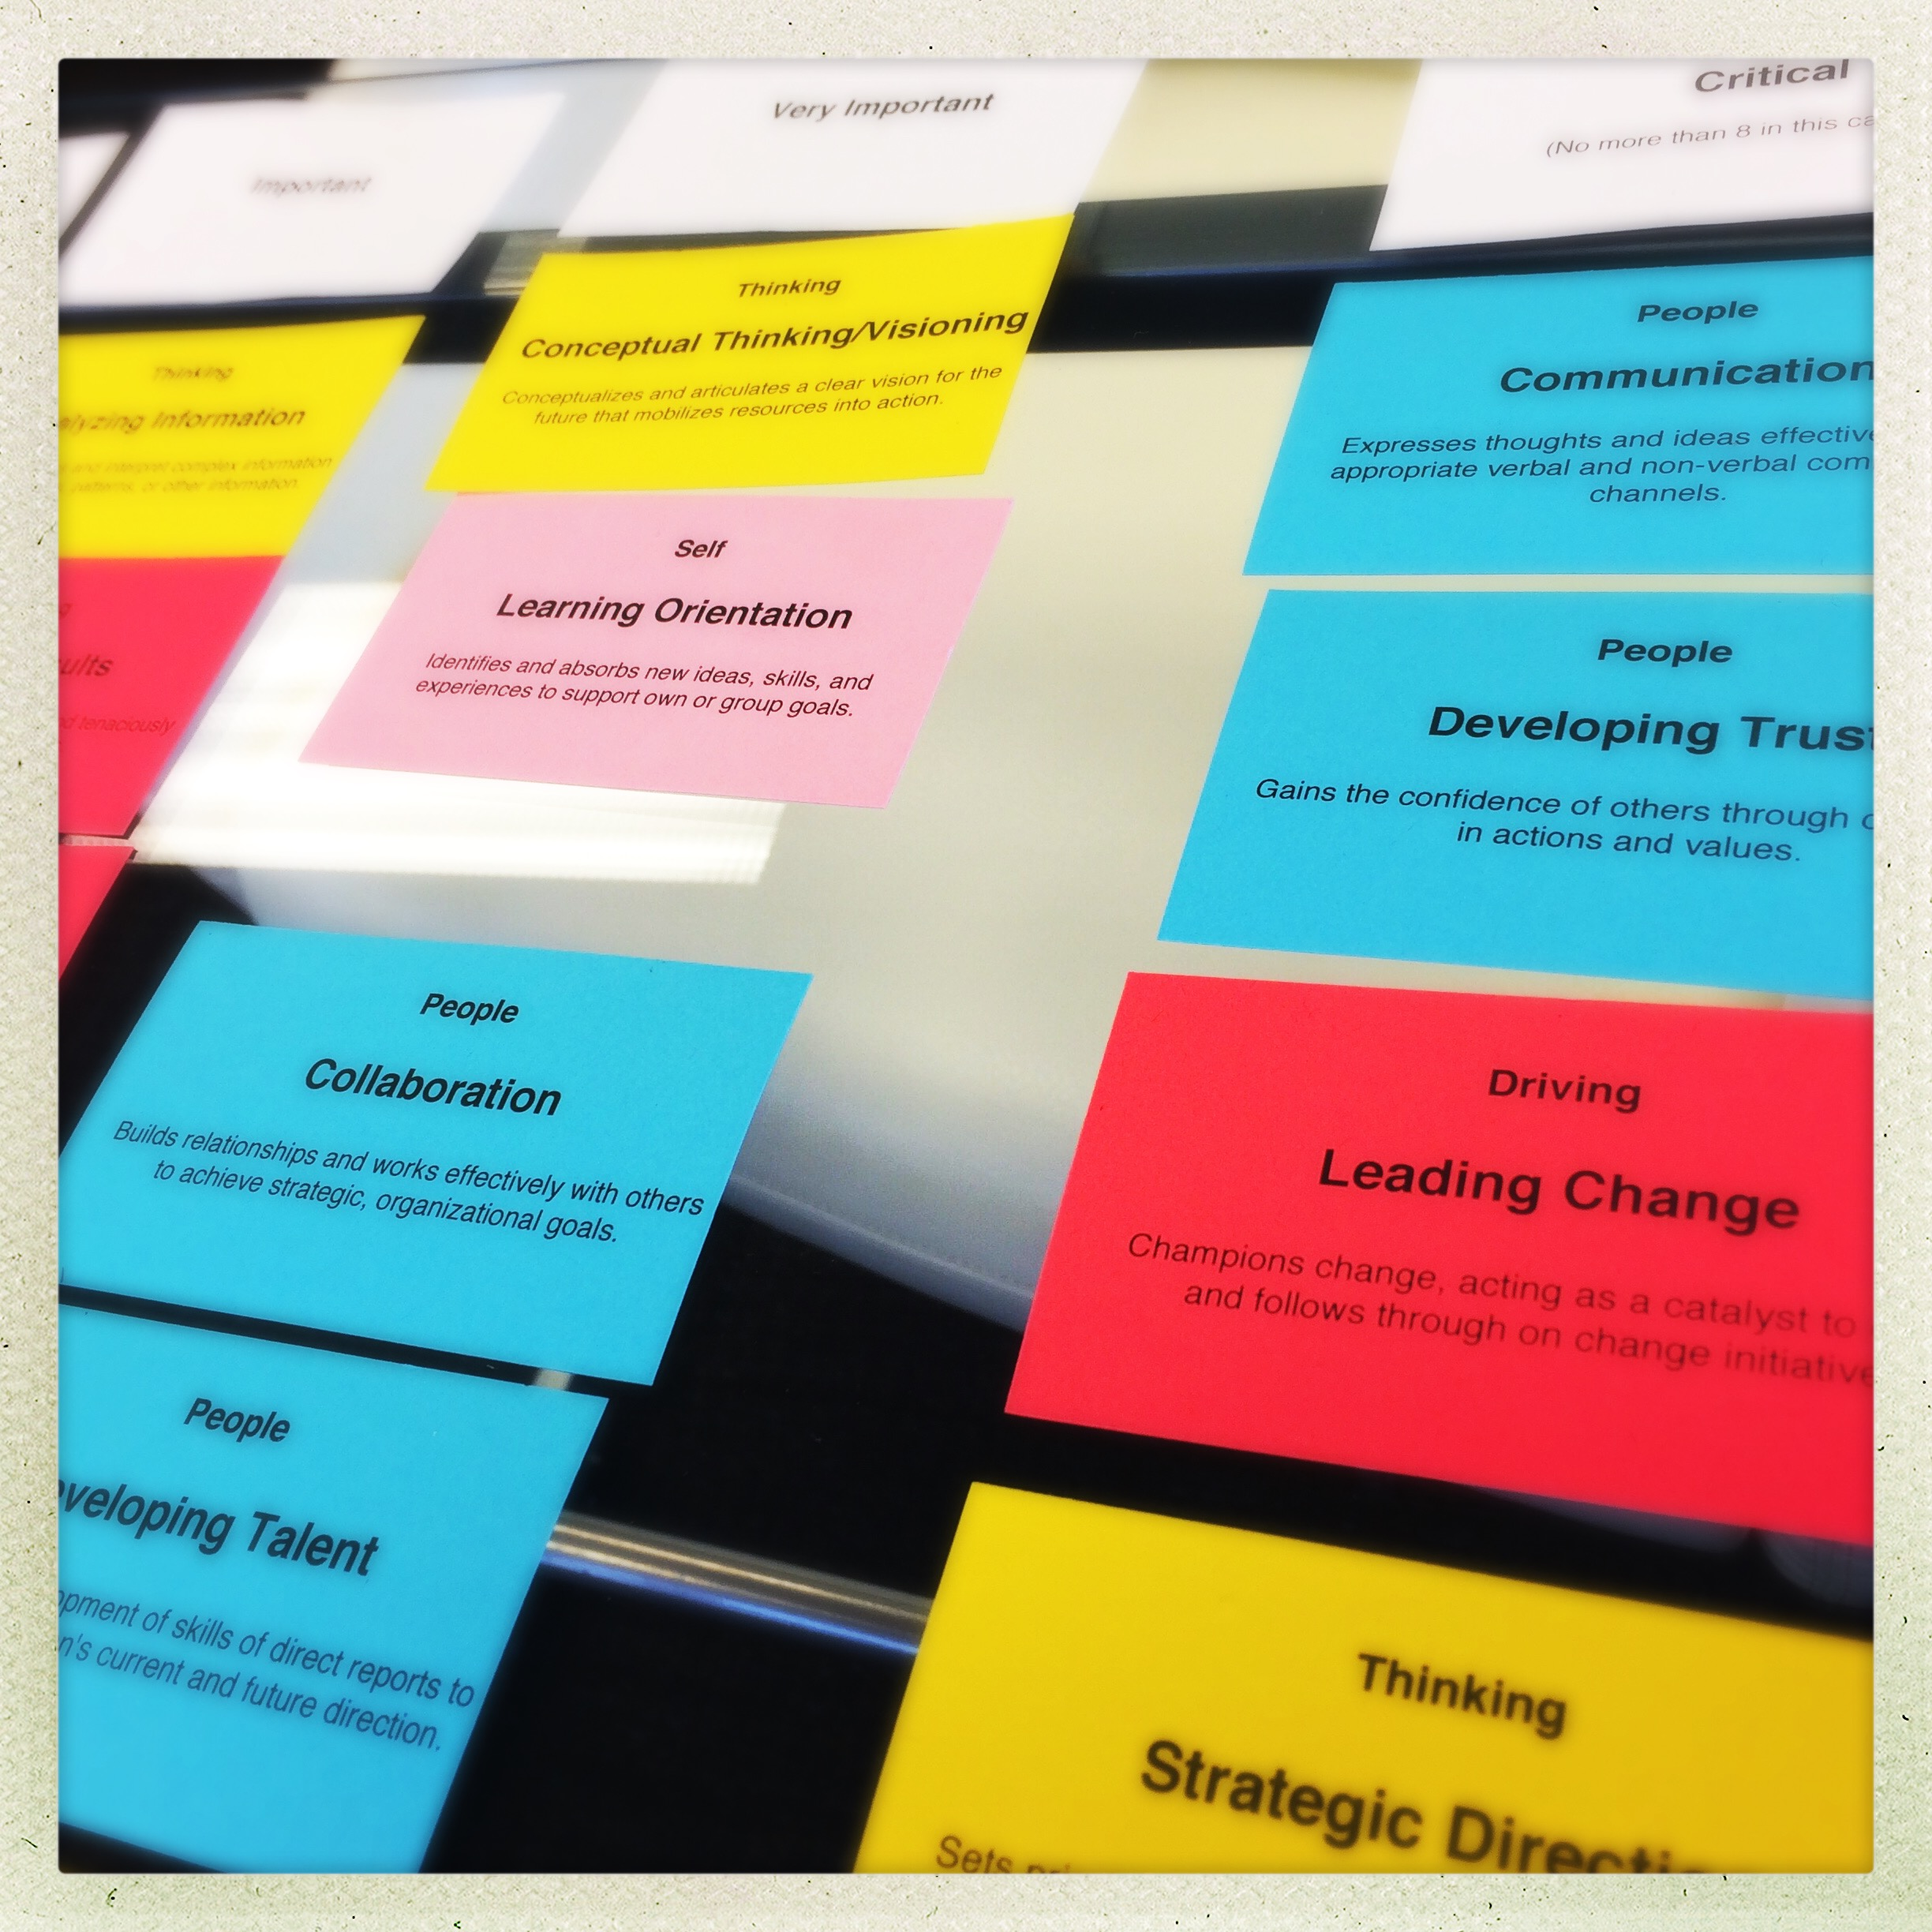 Competency modeling cards of the strategic leader